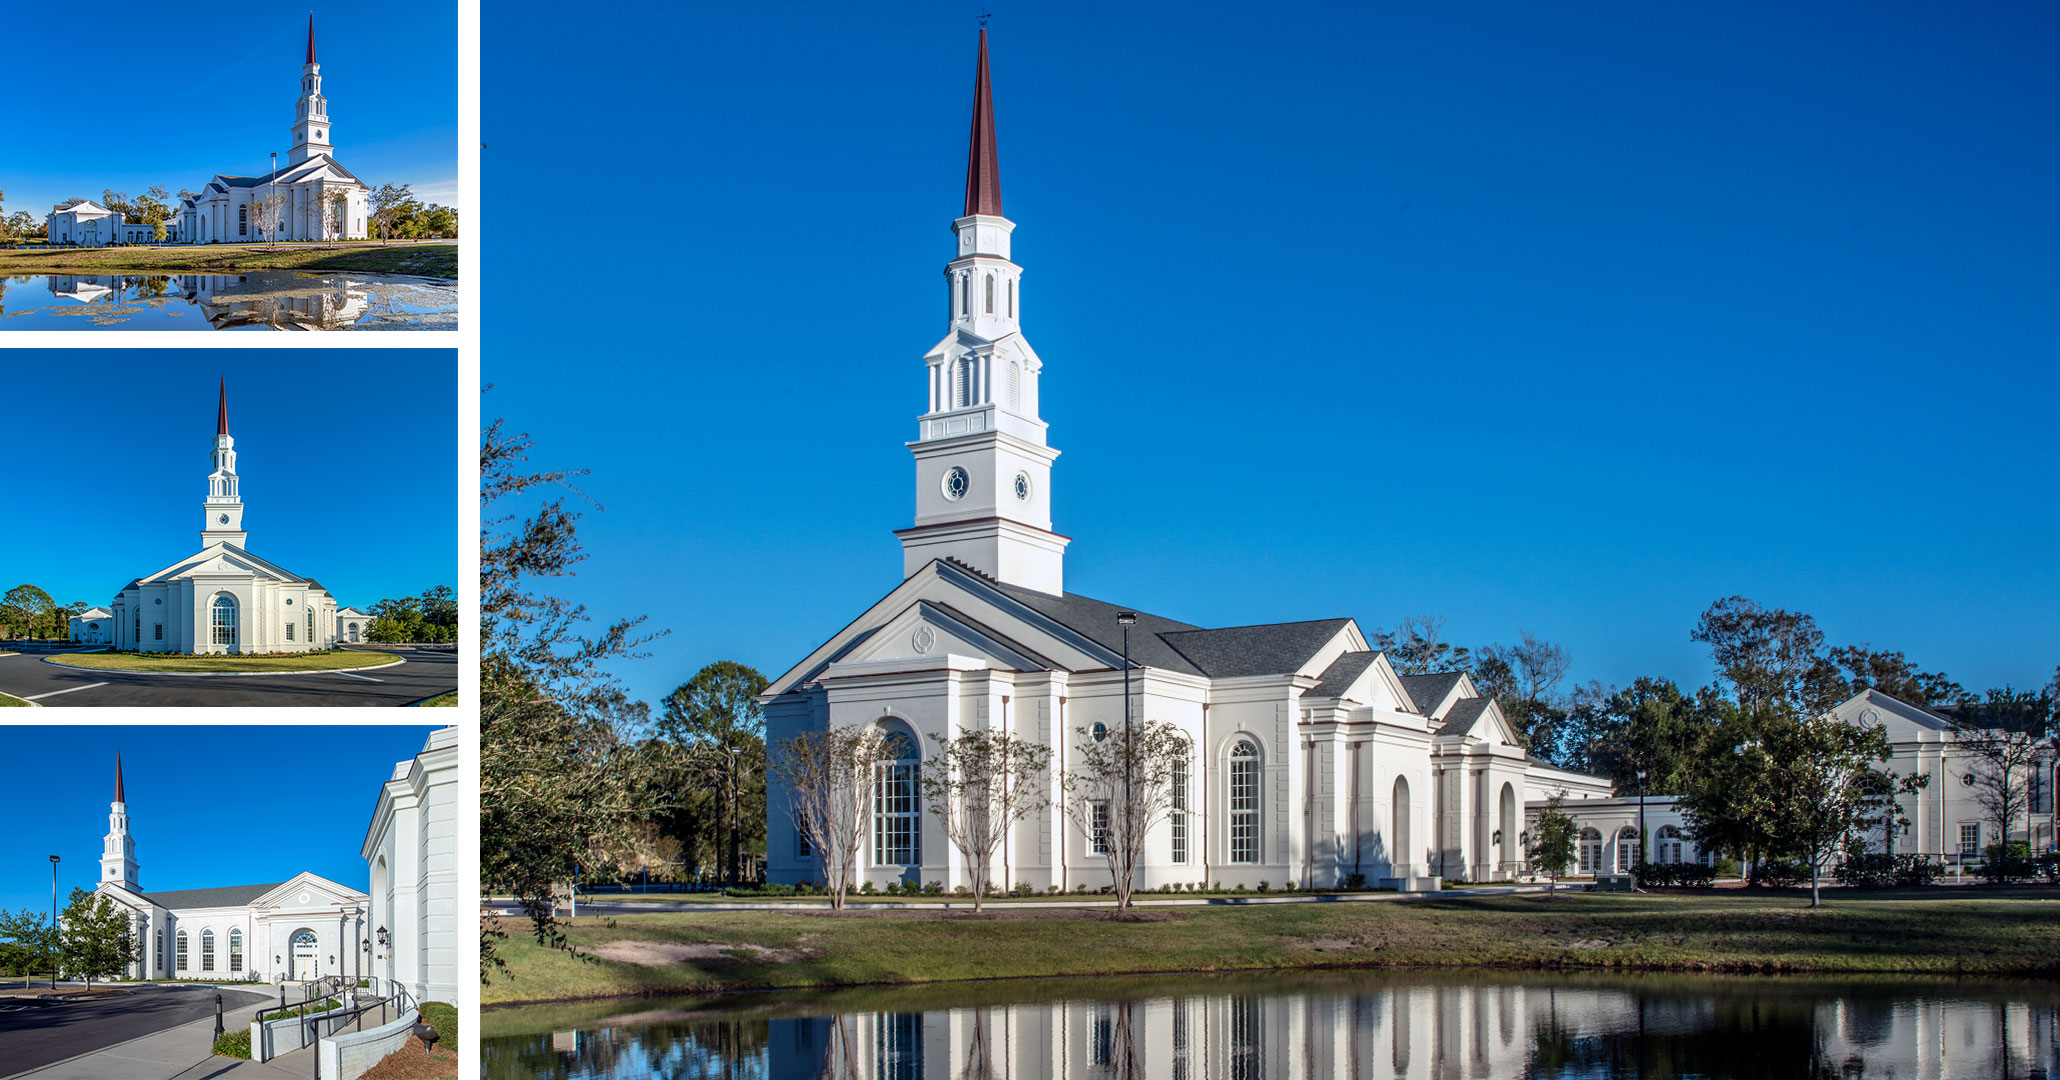 Boudreaux architects designed the First Presbyterian Church in Myrtle Beach, SC.